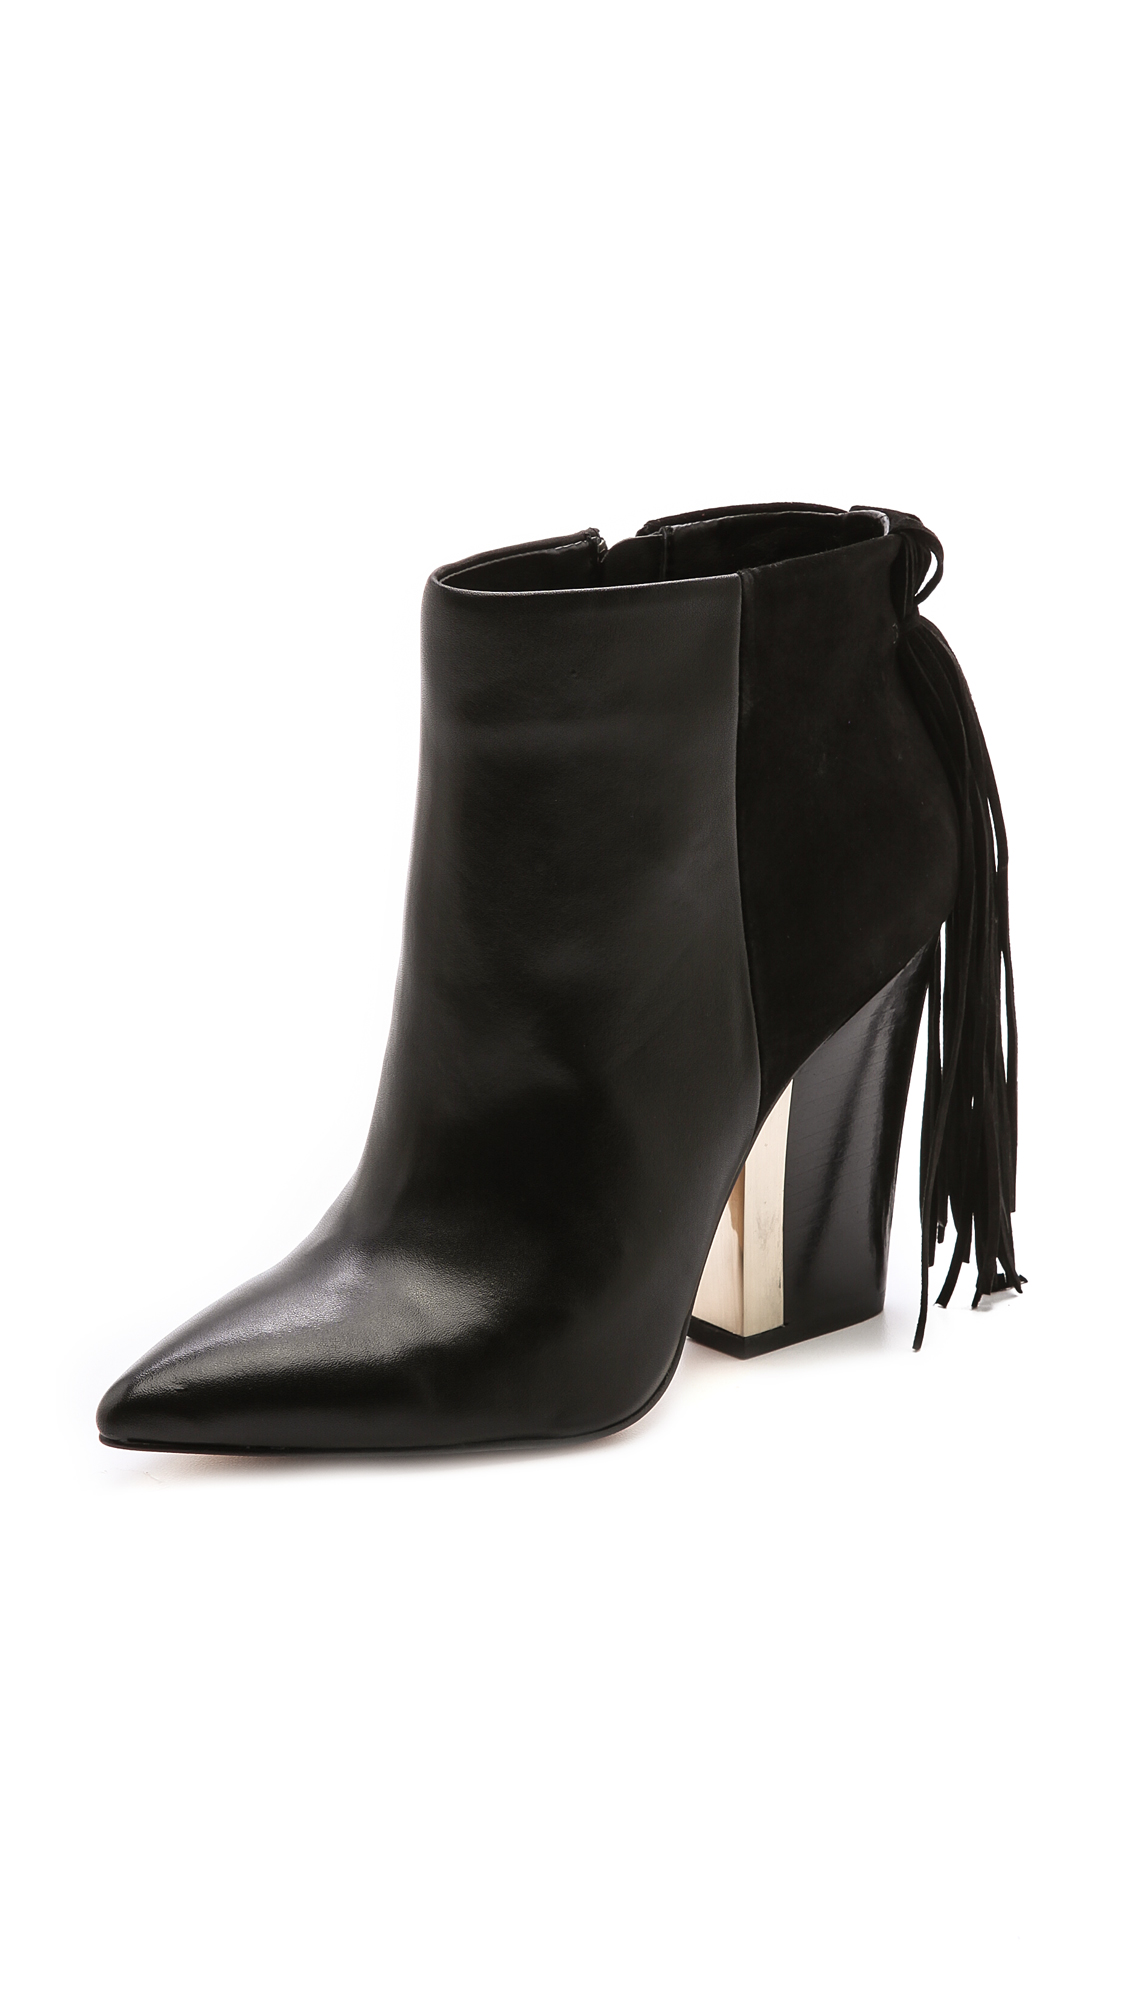 edd7b7db0 Gallery. Previously sold at  Shopbop · Women s Black Boots ...